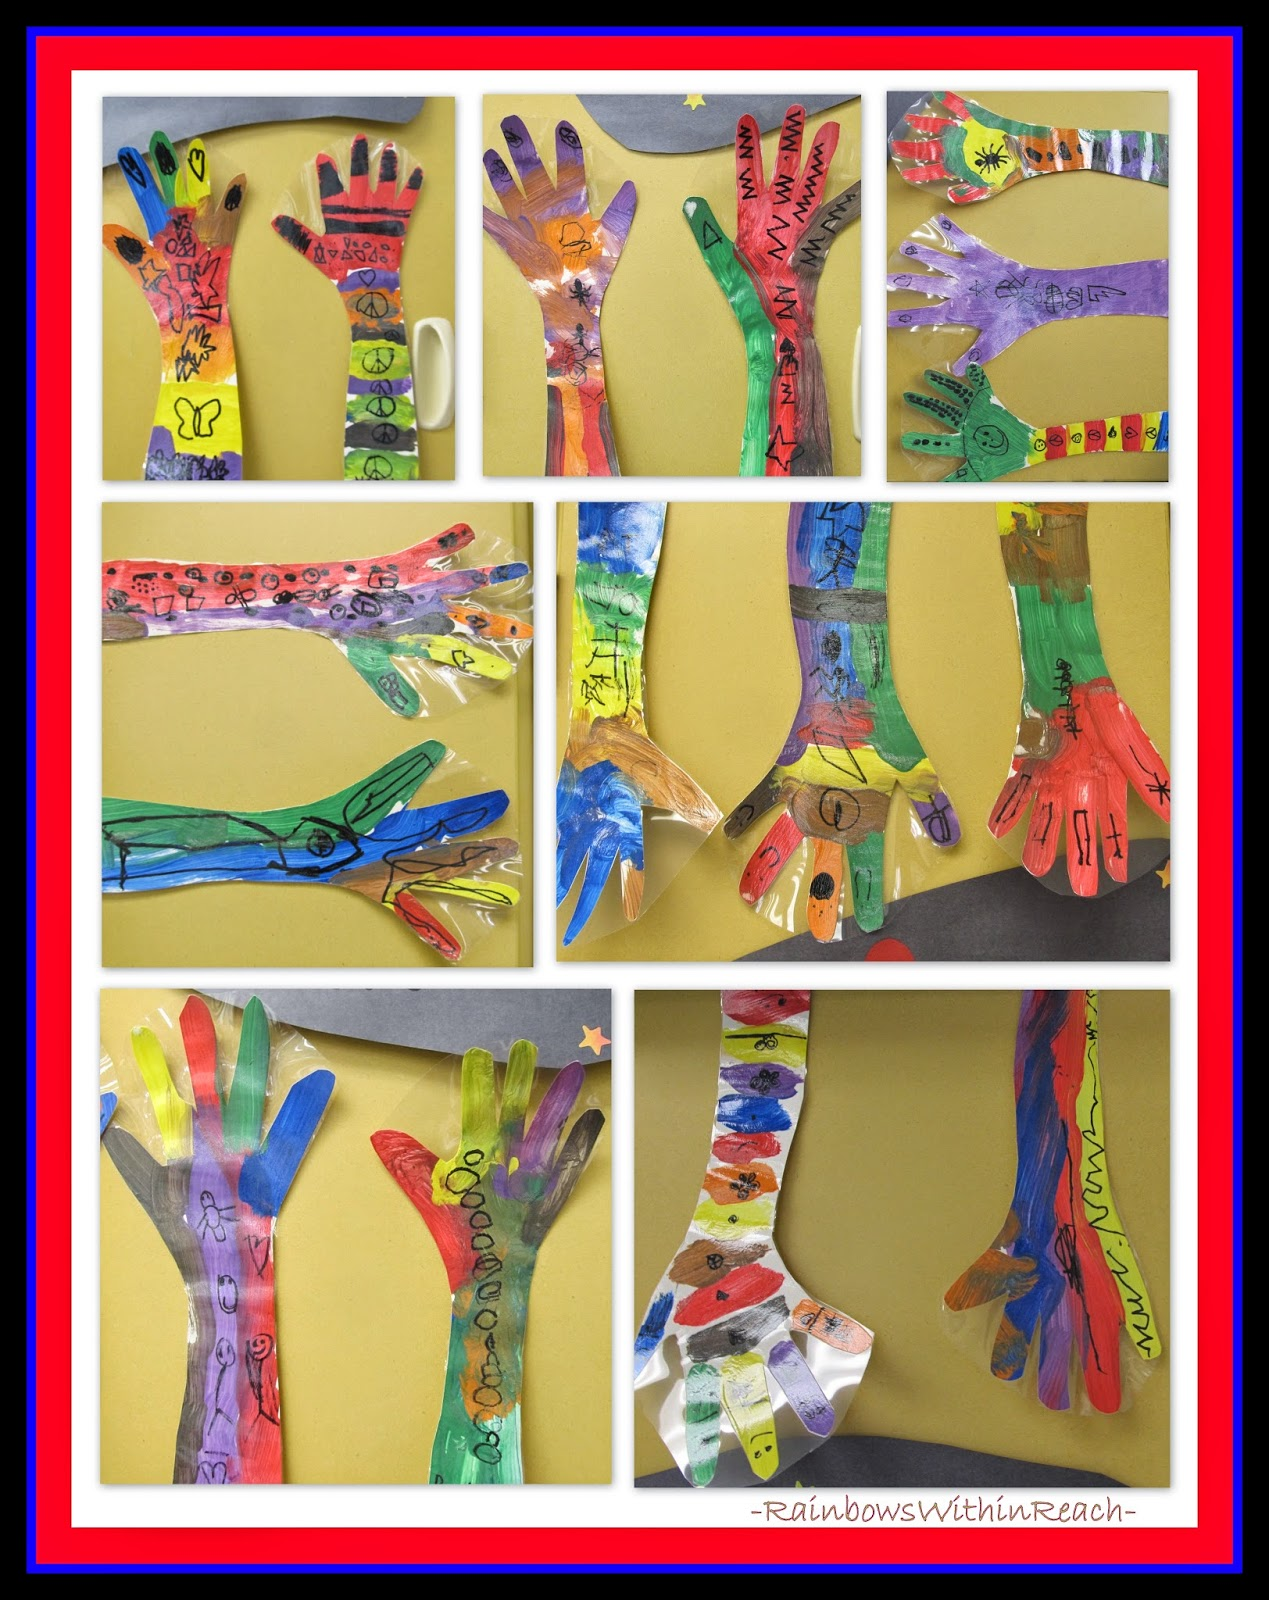 Back to School Hand Art in Kindergarten via RainbowsWithinReach